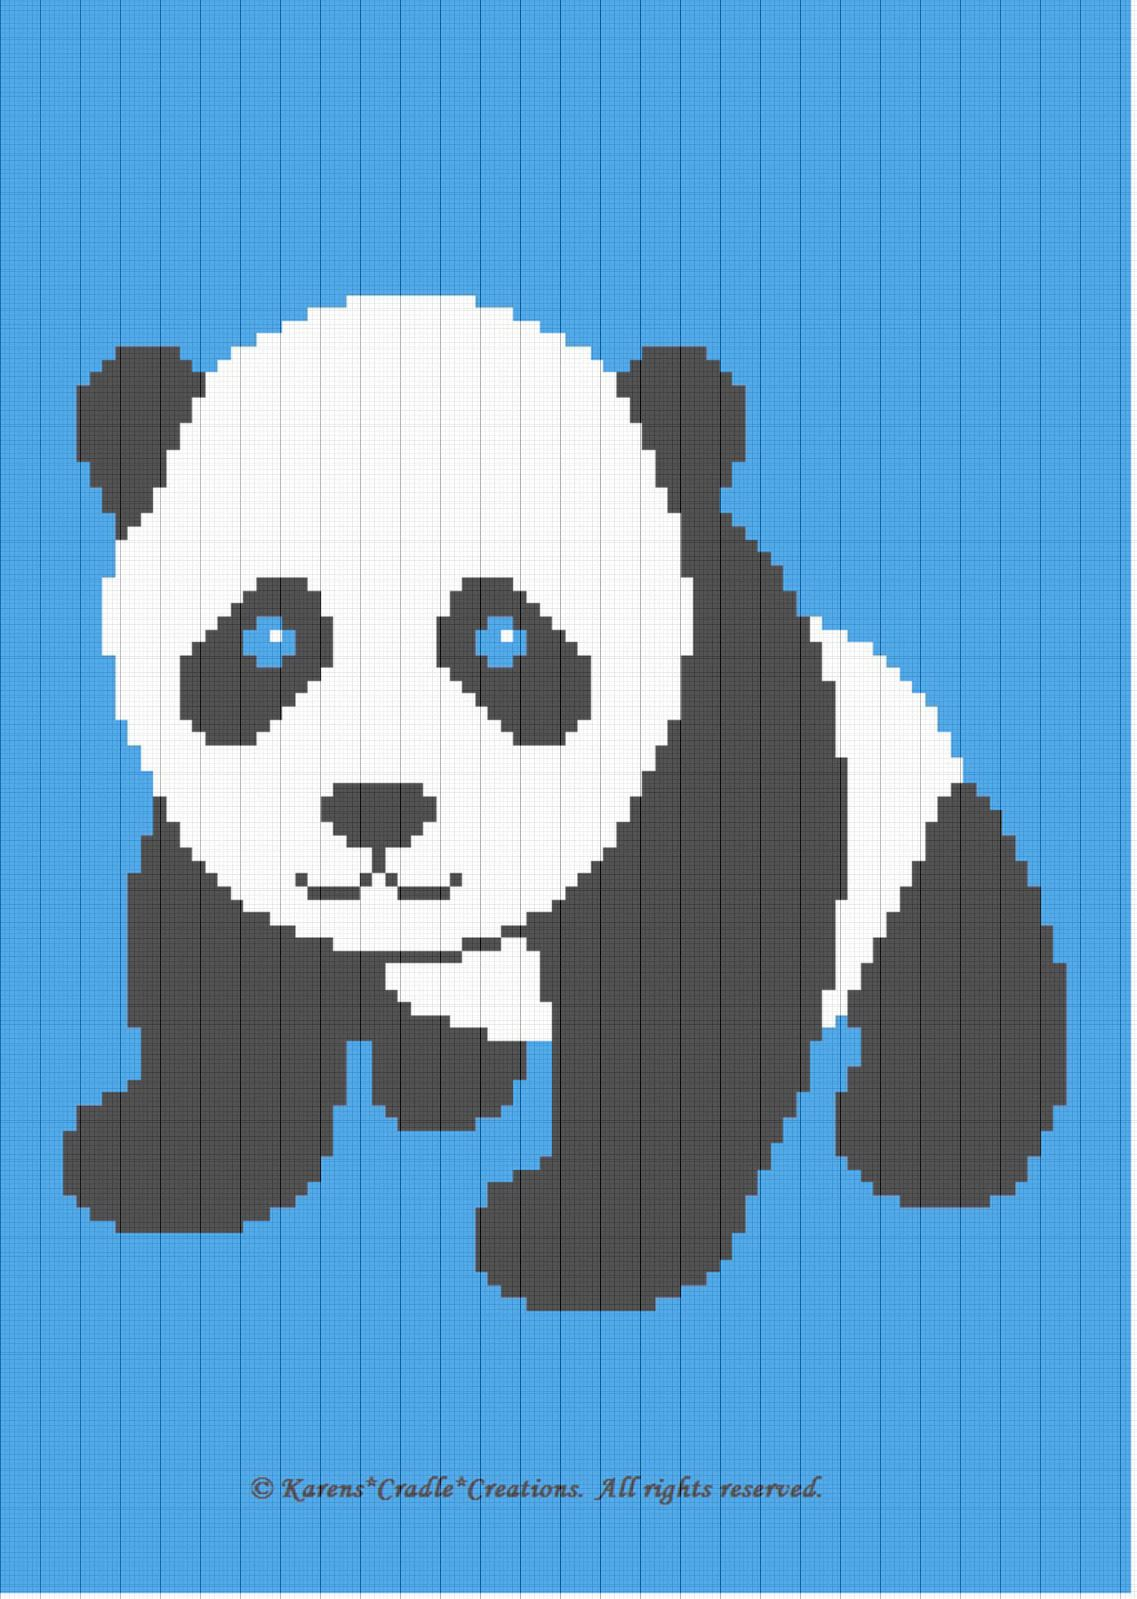 medium resolution of baby panda bear afghan pattern original graph pattern artwork karens cradle creations all rights reserved up for auction is a graph pattern that